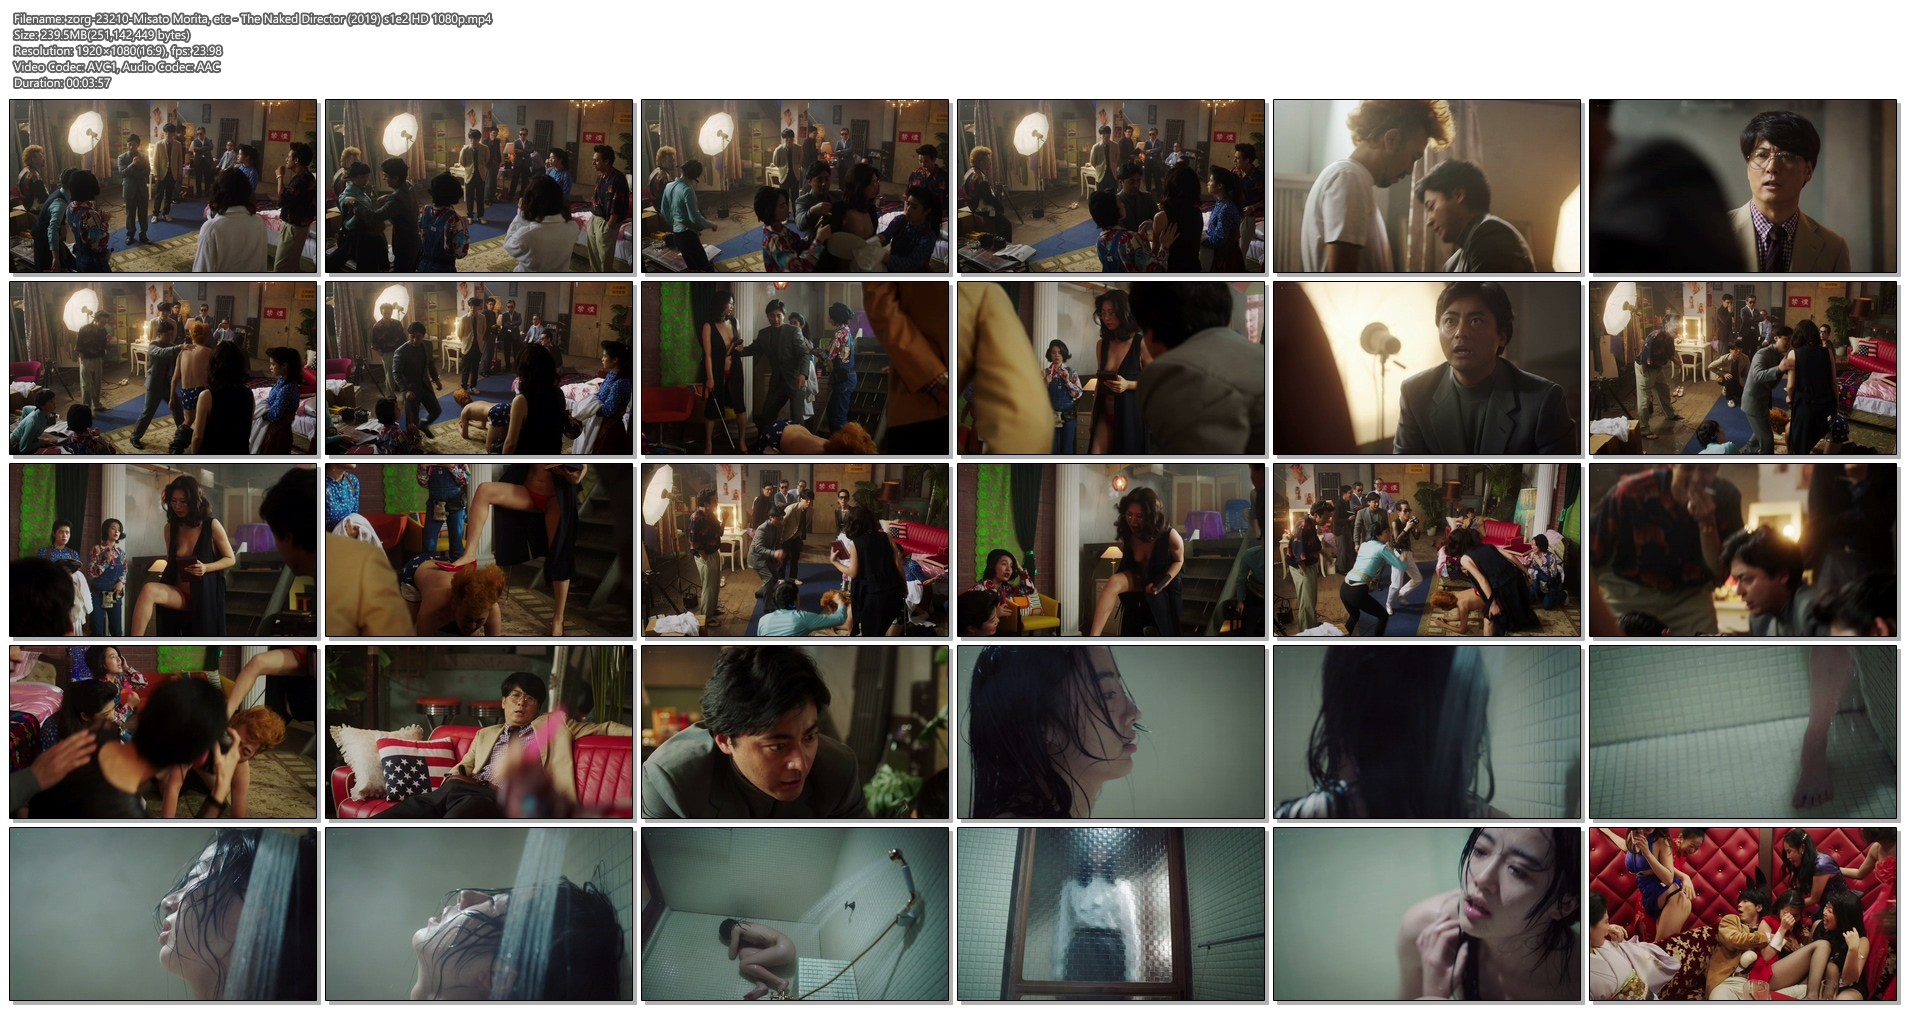 Misato Morita naked in the shower rest nude - The Naked Director (2019) s1e2 HD 1080p (1)